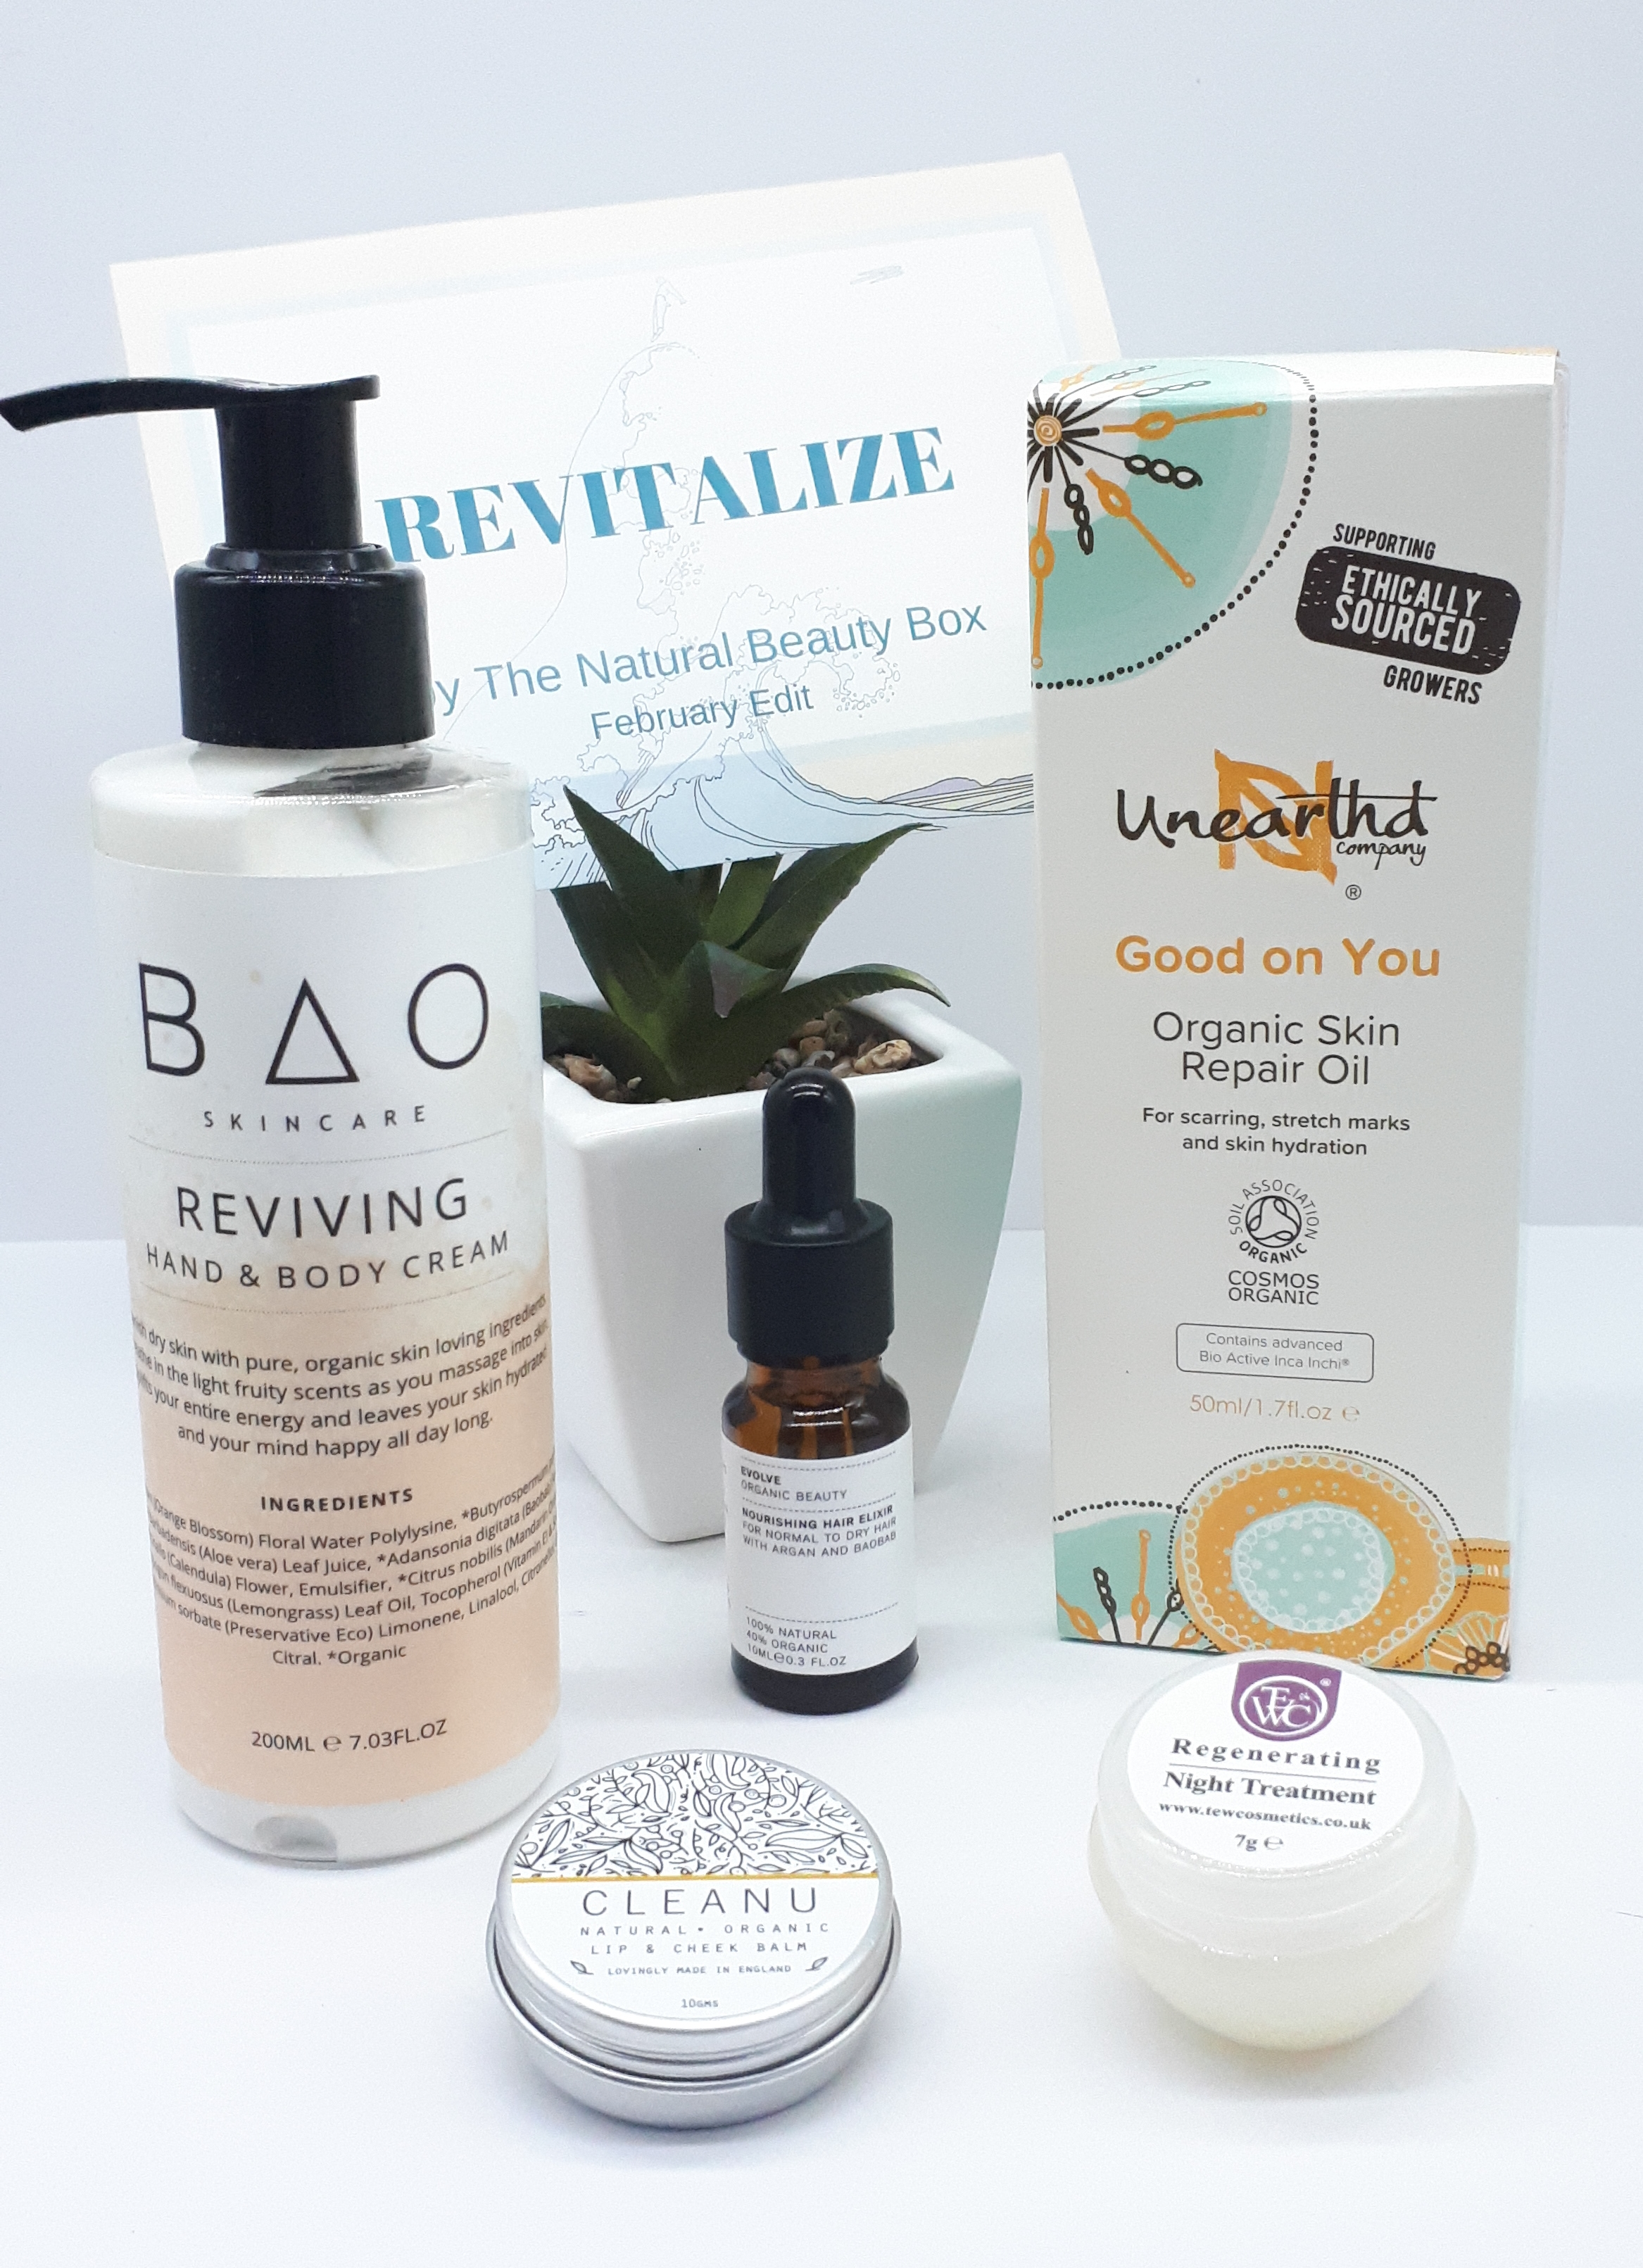 The Natural Beauty Box: February 2019 (Review)